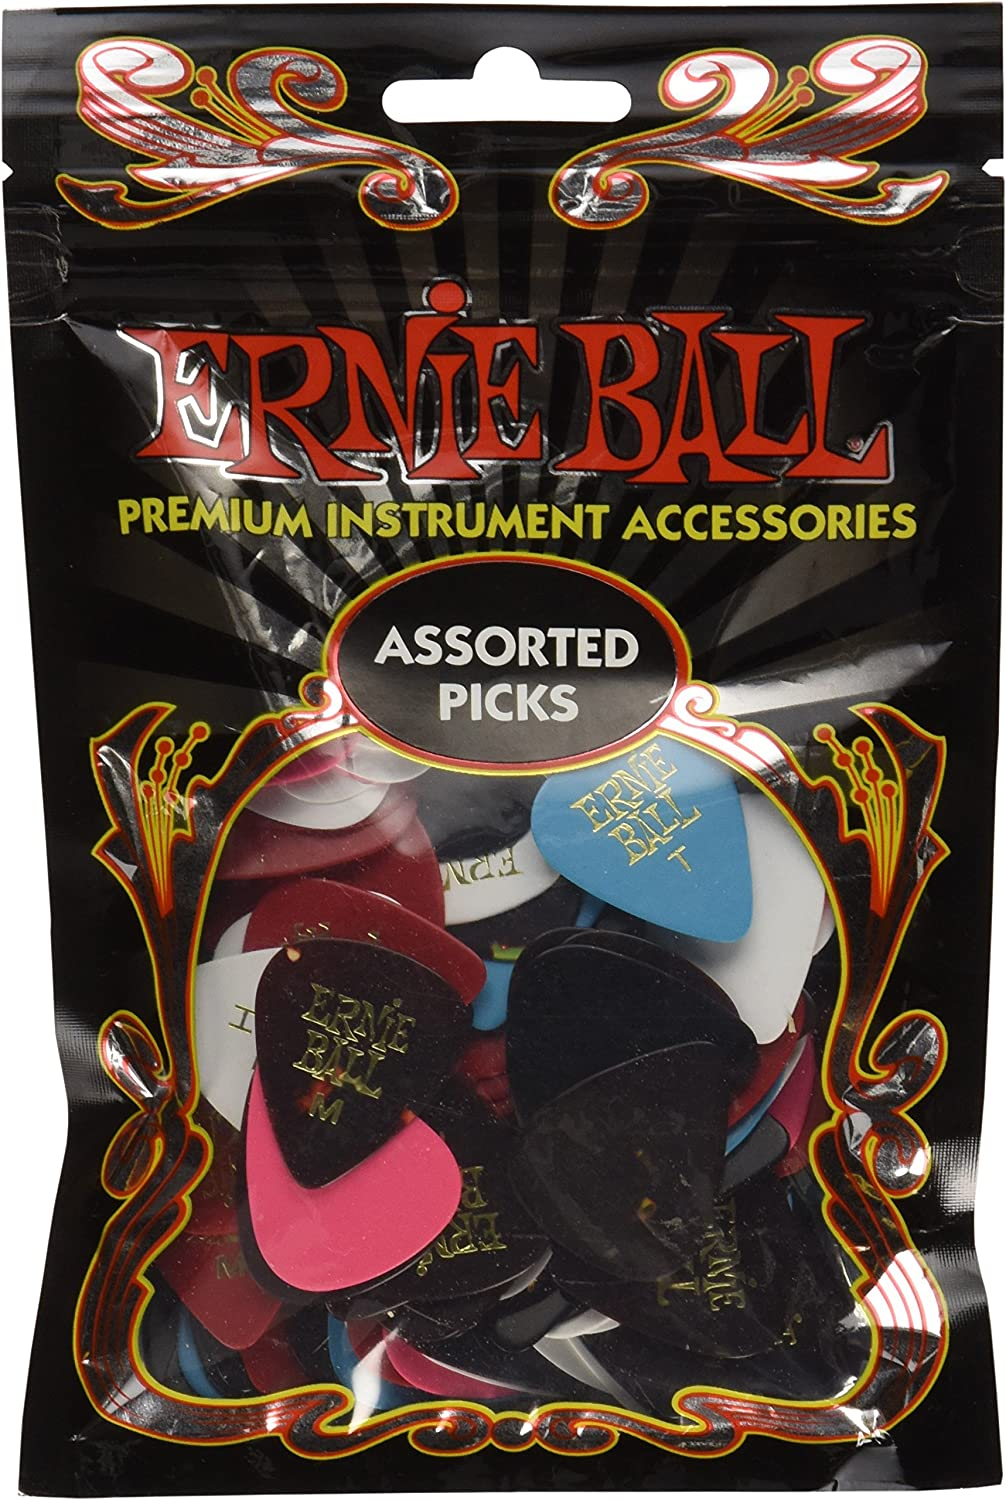 Ernie Ball Assorted Size and Bag Picks 144 Color of Popular shop is the lowest price challenge half